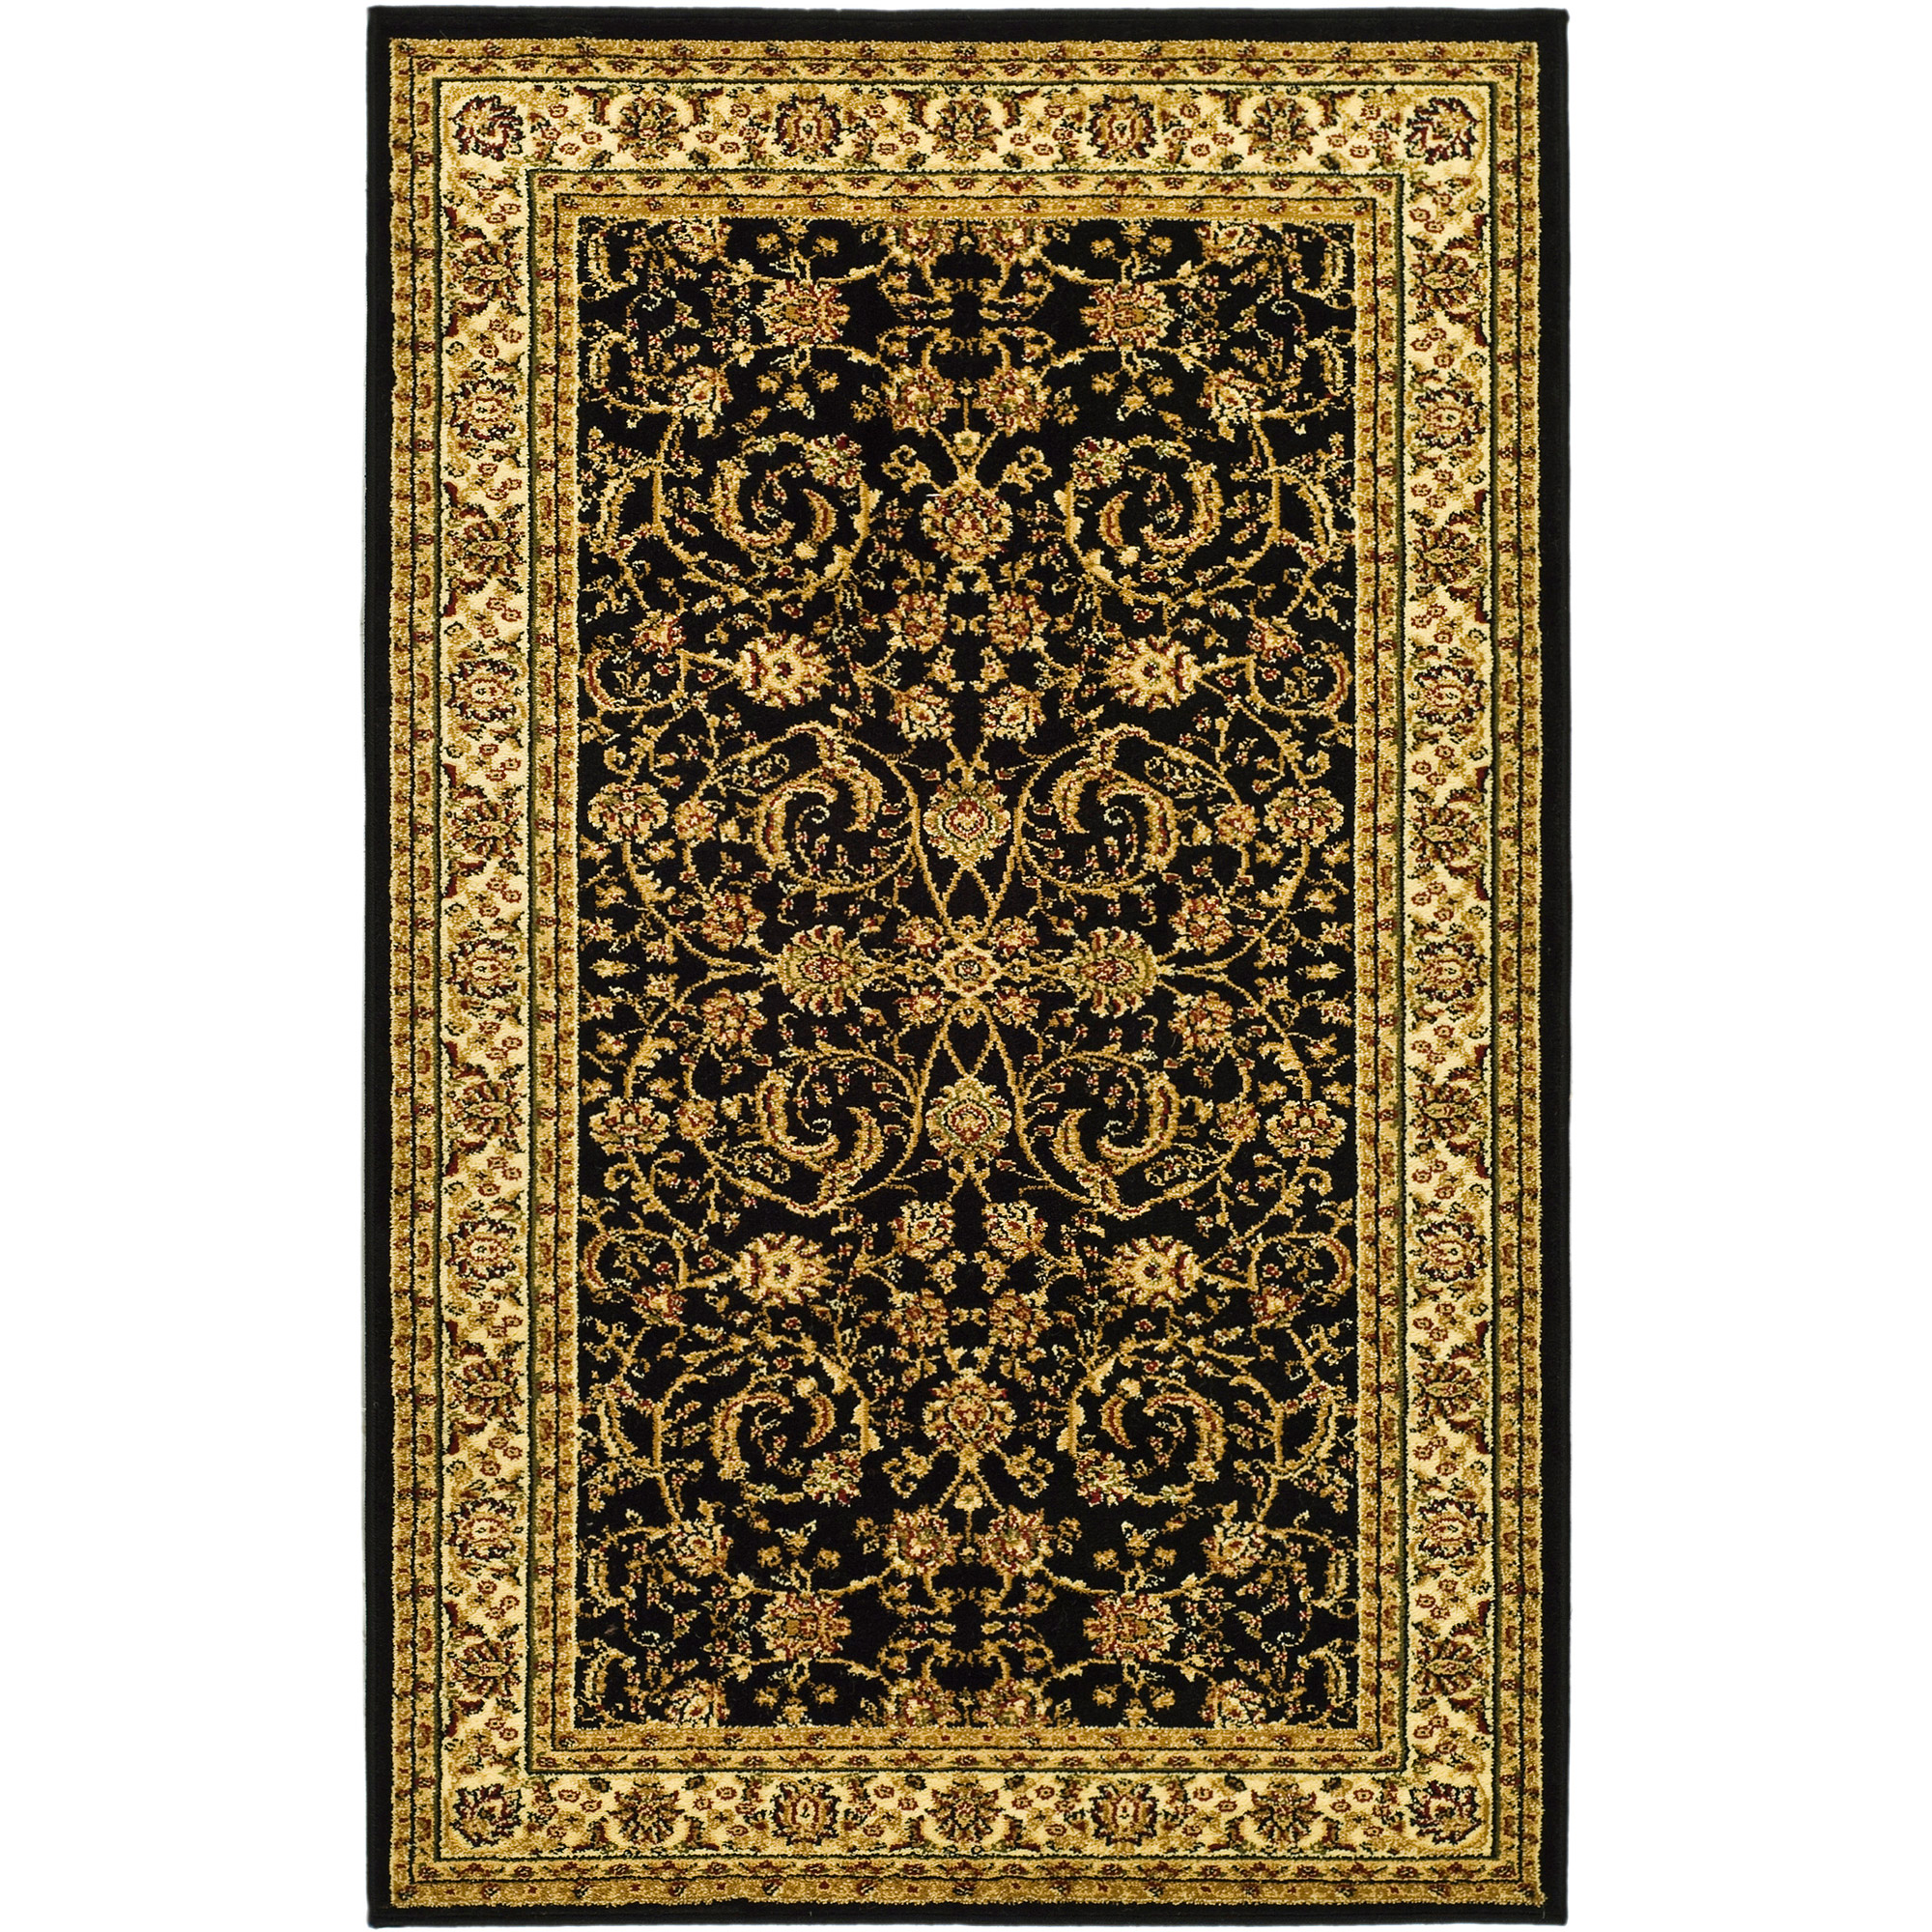 Safavieh Lyndhurst Priscilla Traditional Area Rug or Runner by Safavieh